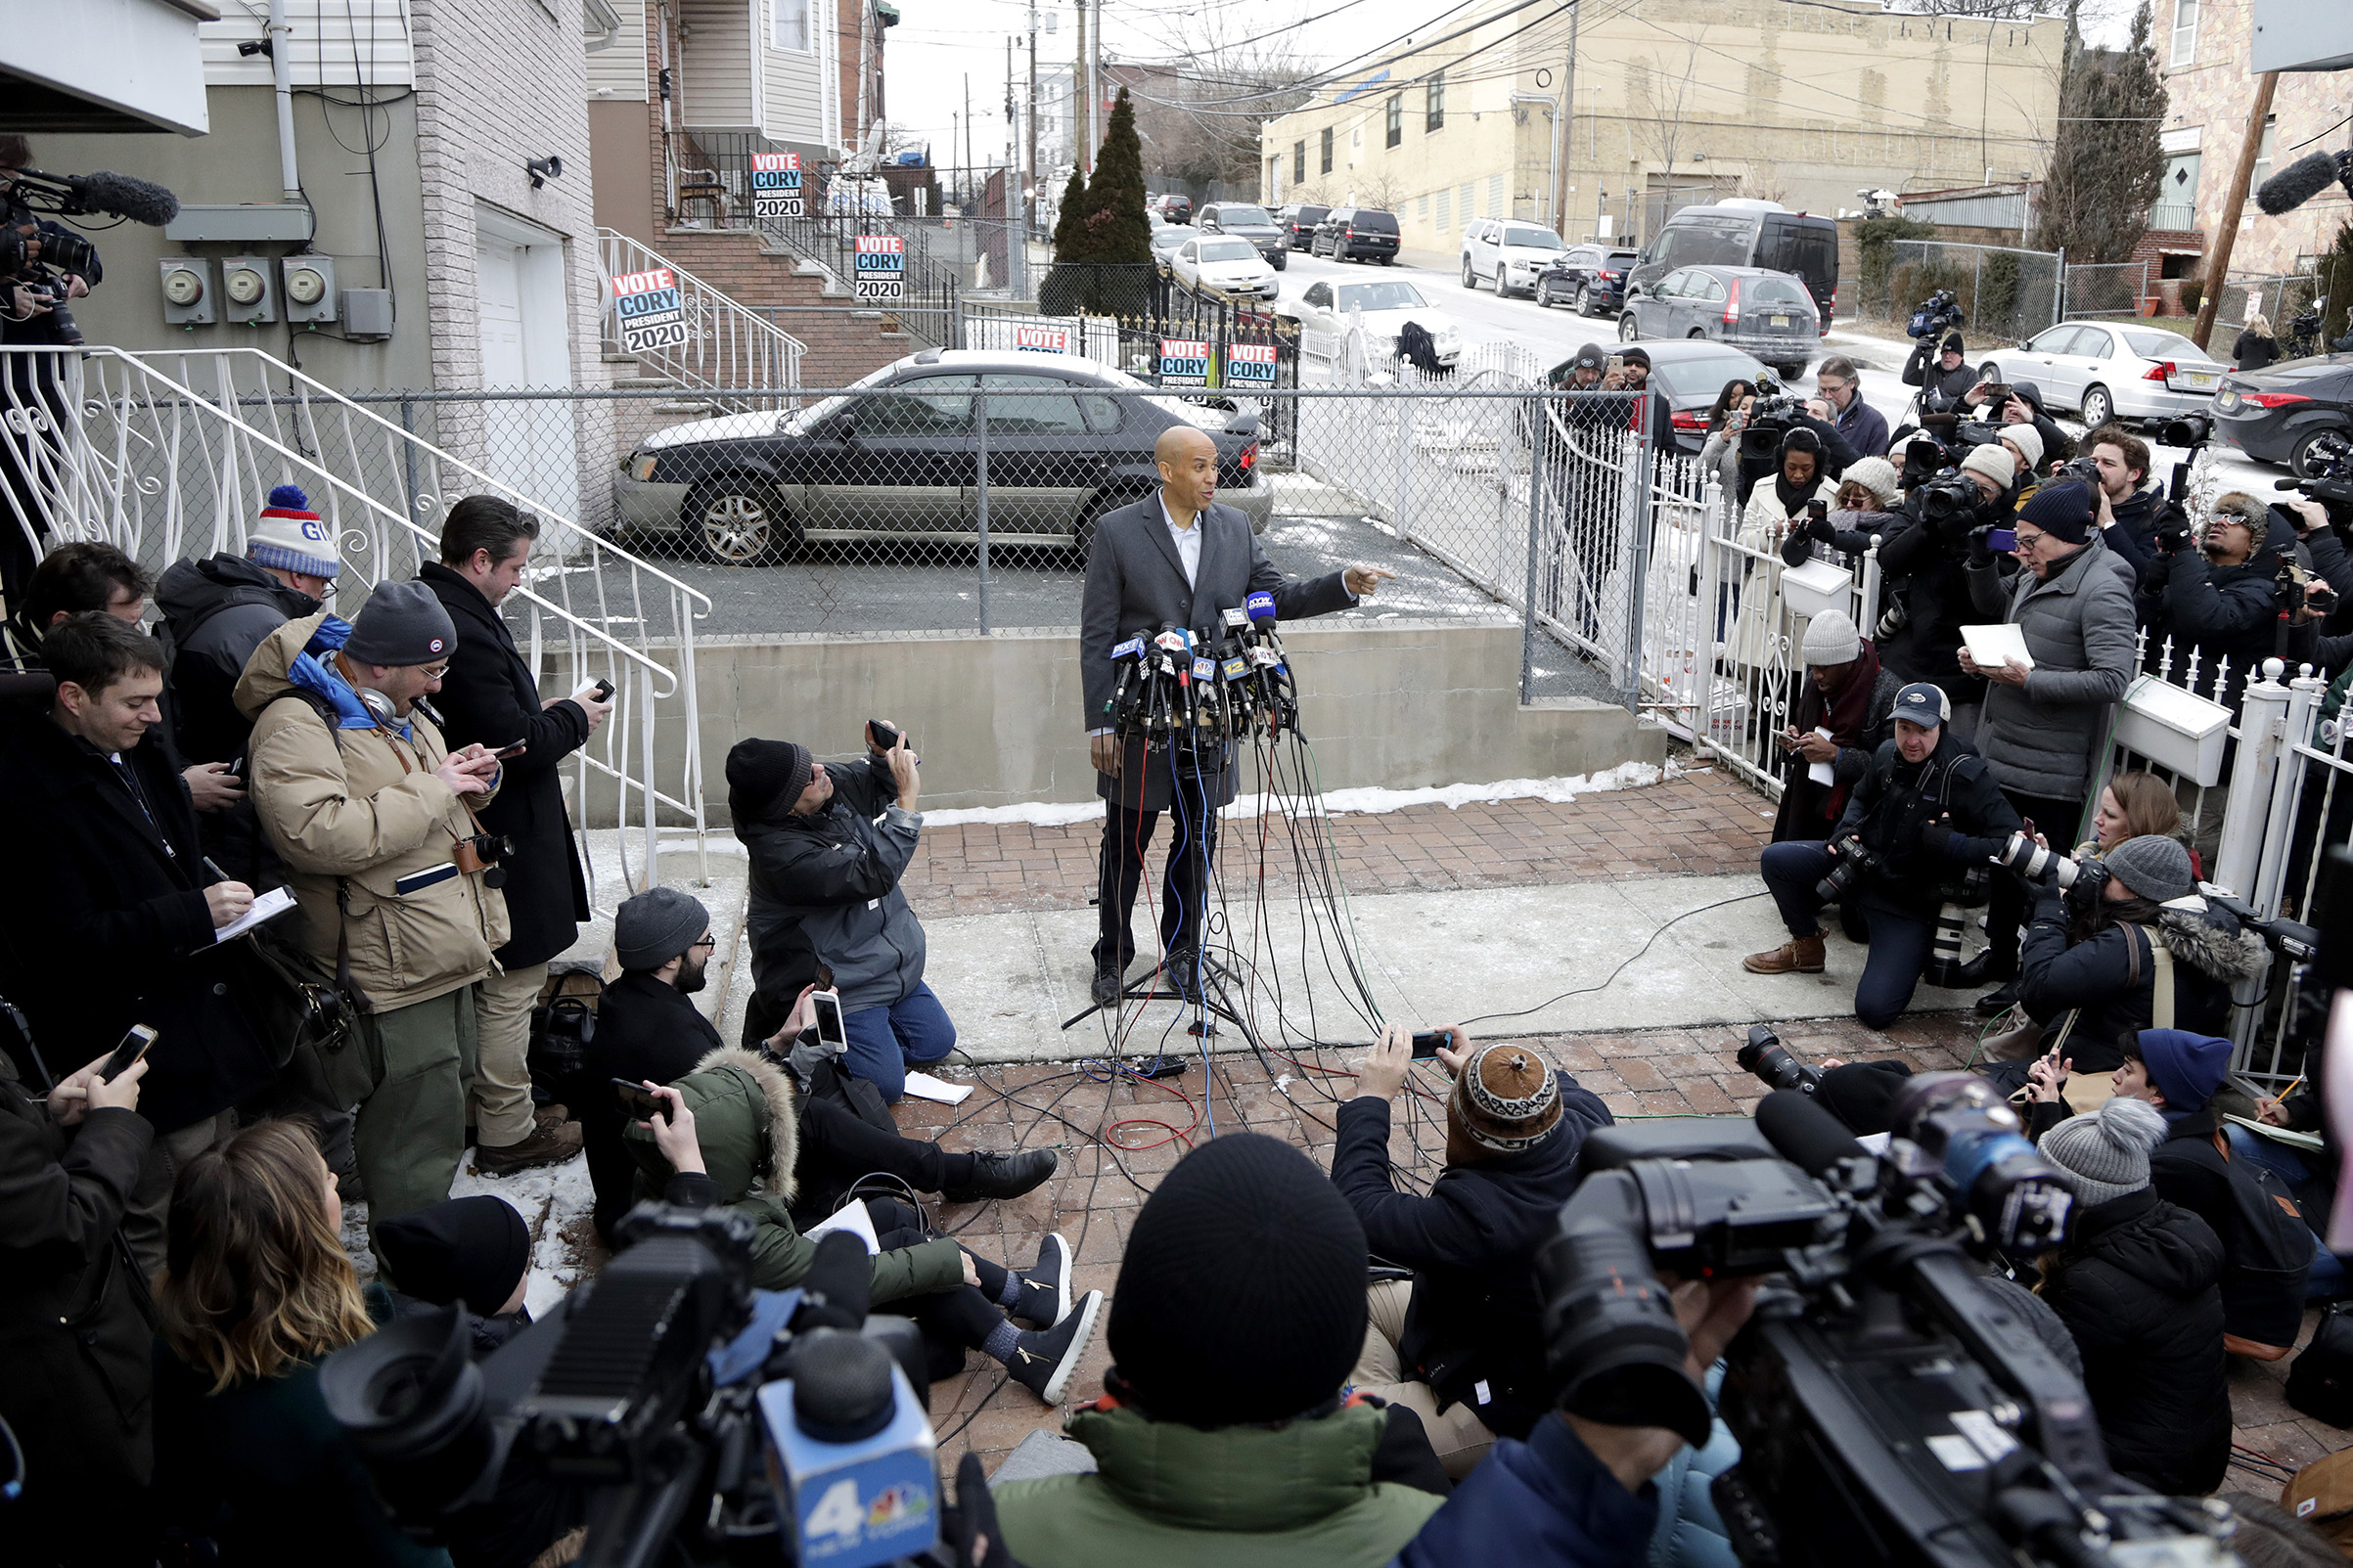 Sen. Cory Booker speaks during a news conference outside of his home in Newark, N.J. on Feb. 1, 2019.